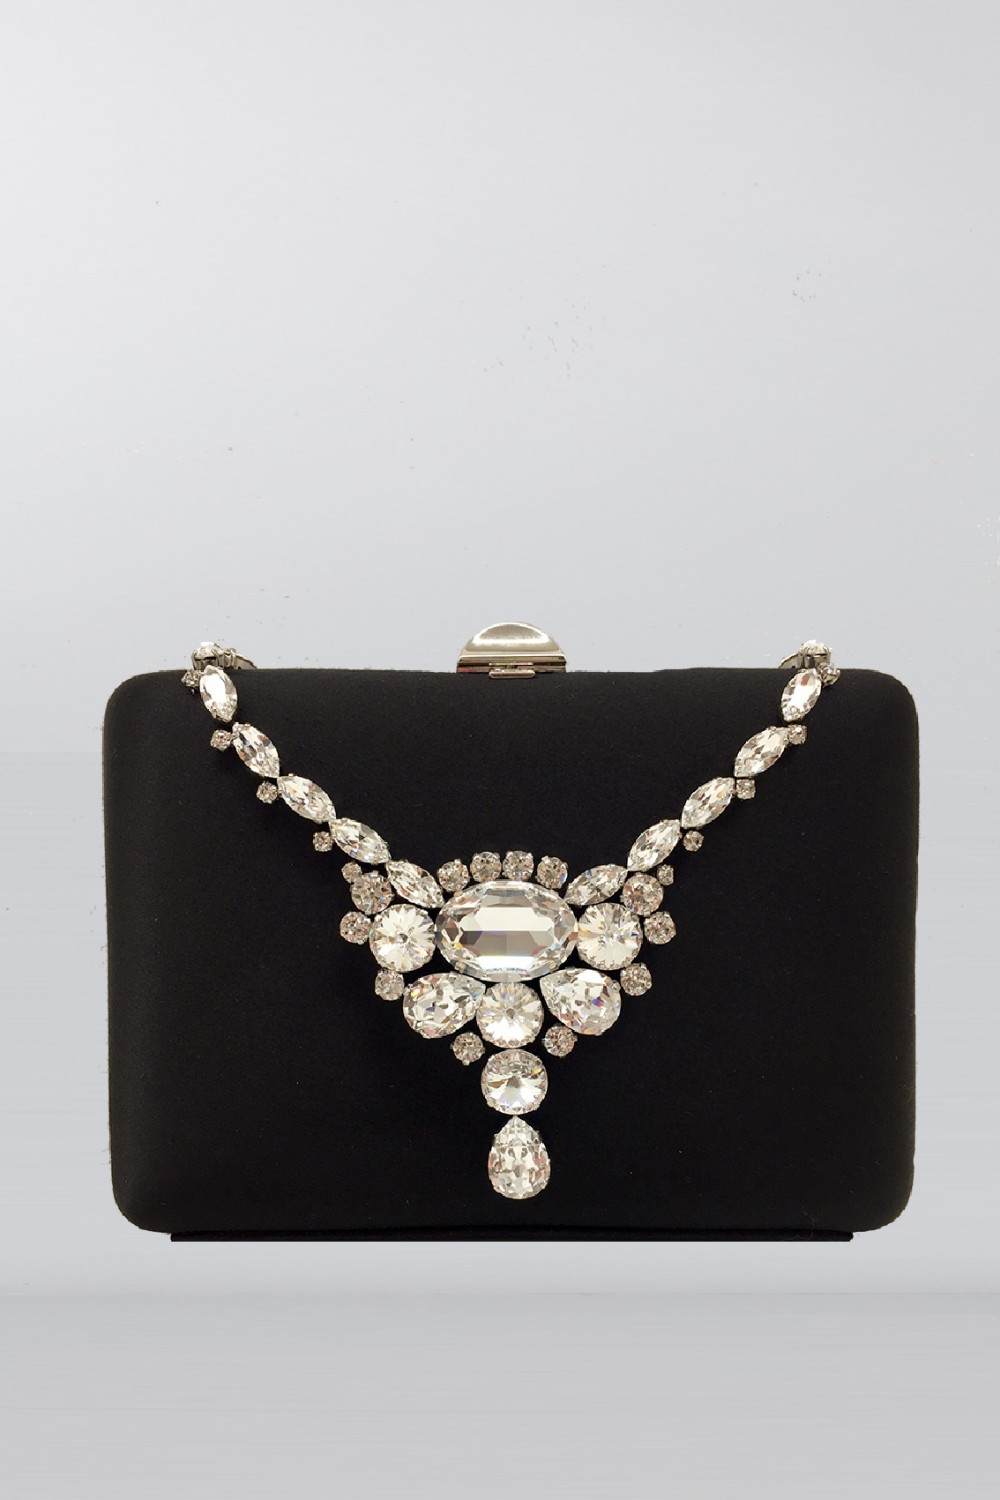 Black clutch with necklace